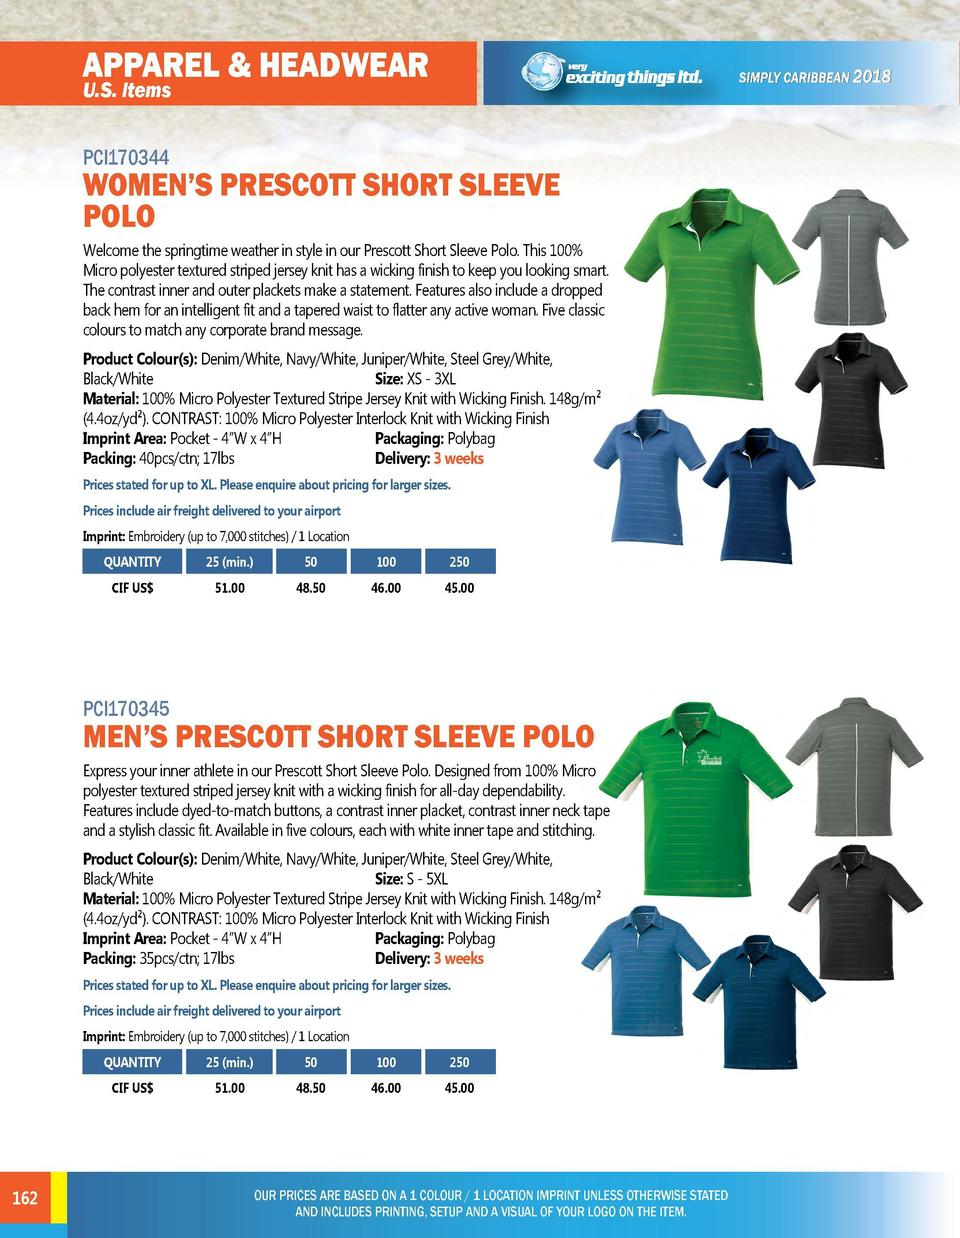 APPAREL   HEADWEAR  APPAREL   HEADWEAR  U.S. Items  U.S. Items PCI170346  PCI170344  WOMEN   S PRESCOTT SHORT SLEEVE POLO ...